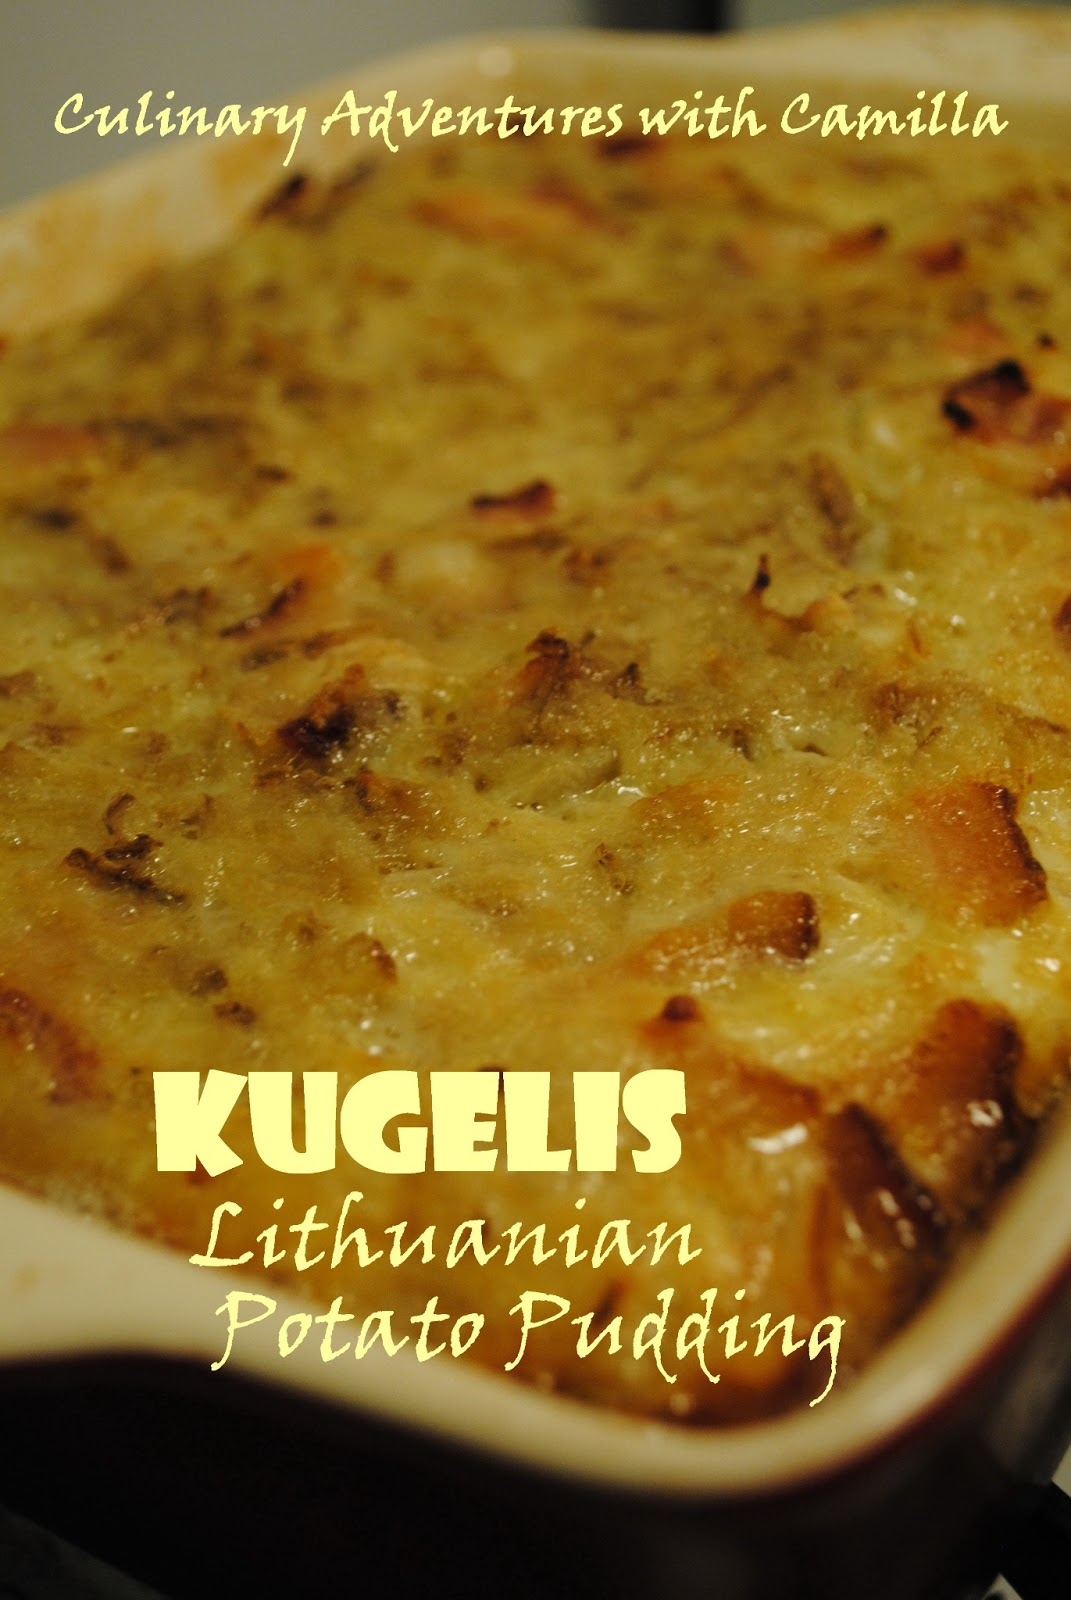 ... Adventures with Camilla: Cooking Around the World: Kugelis {Lithuania